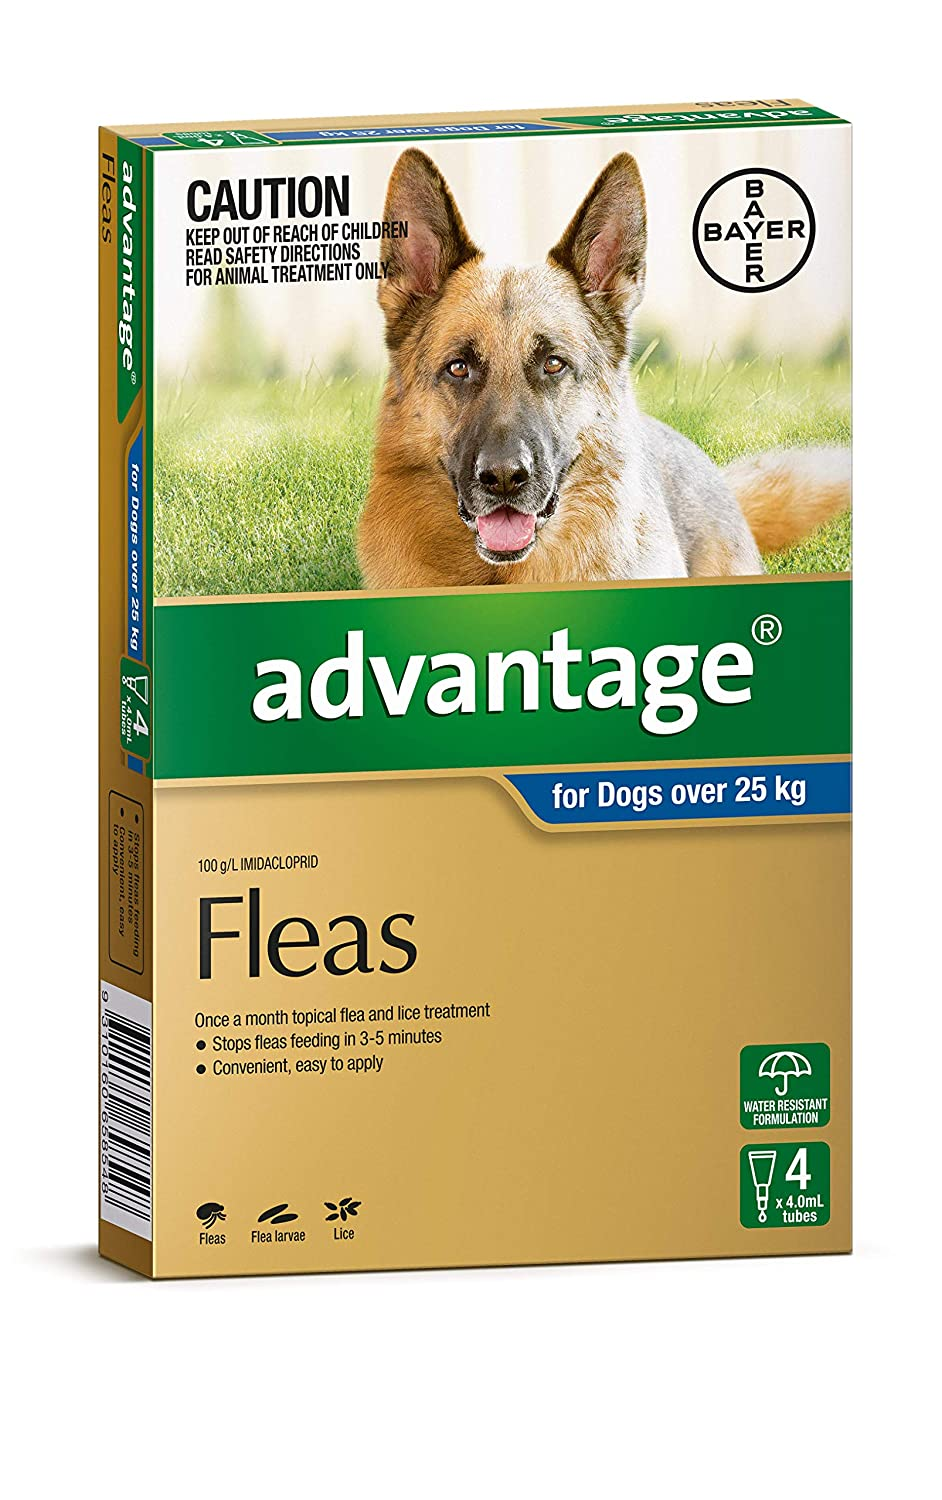 Advantage Flea Treatment for Dog Over 25kg, Pet Meds, Pack of 4